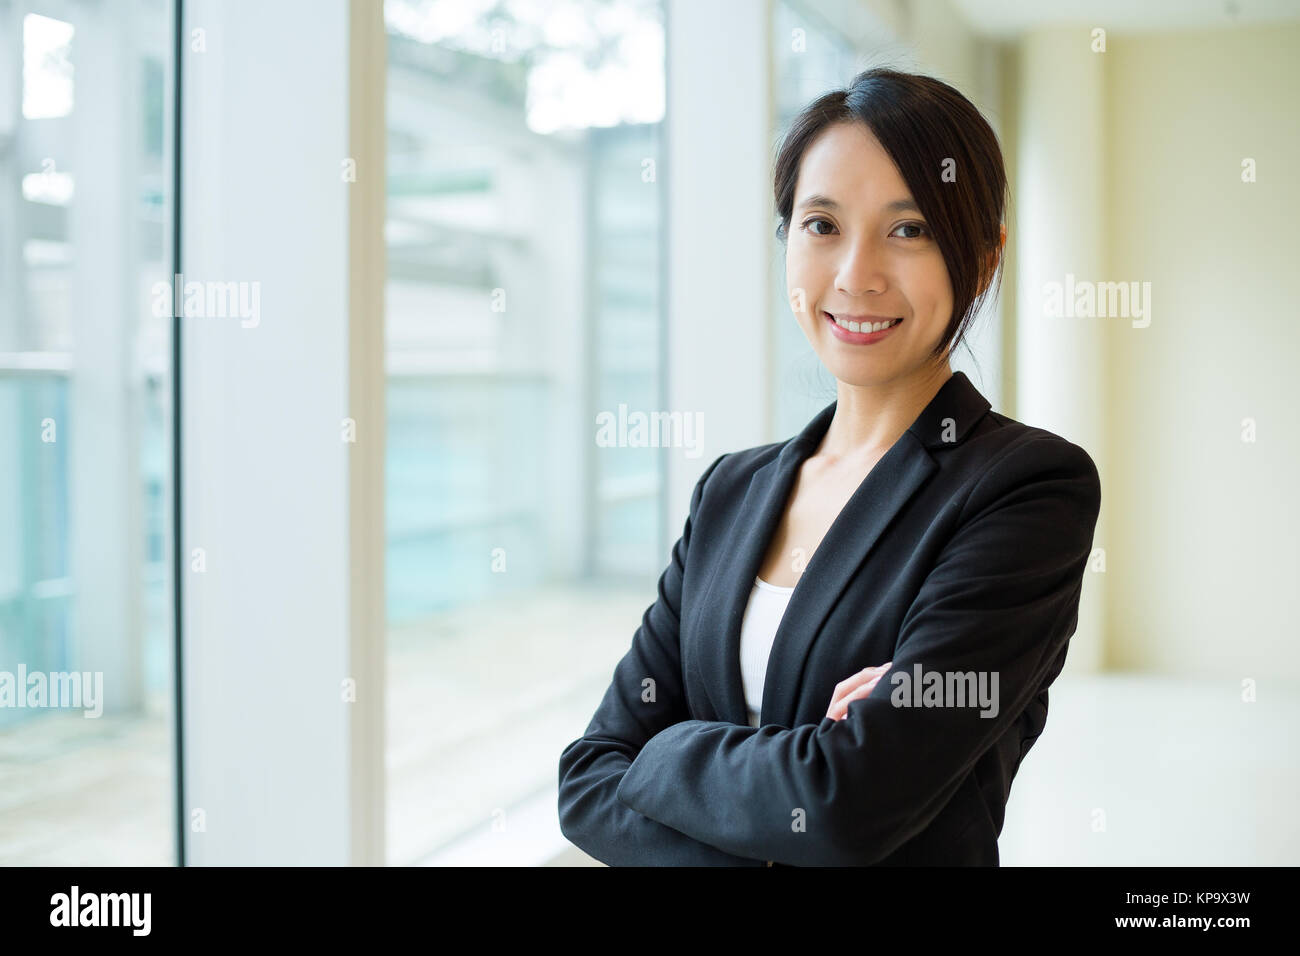 Businesswoman at office - Stock Image